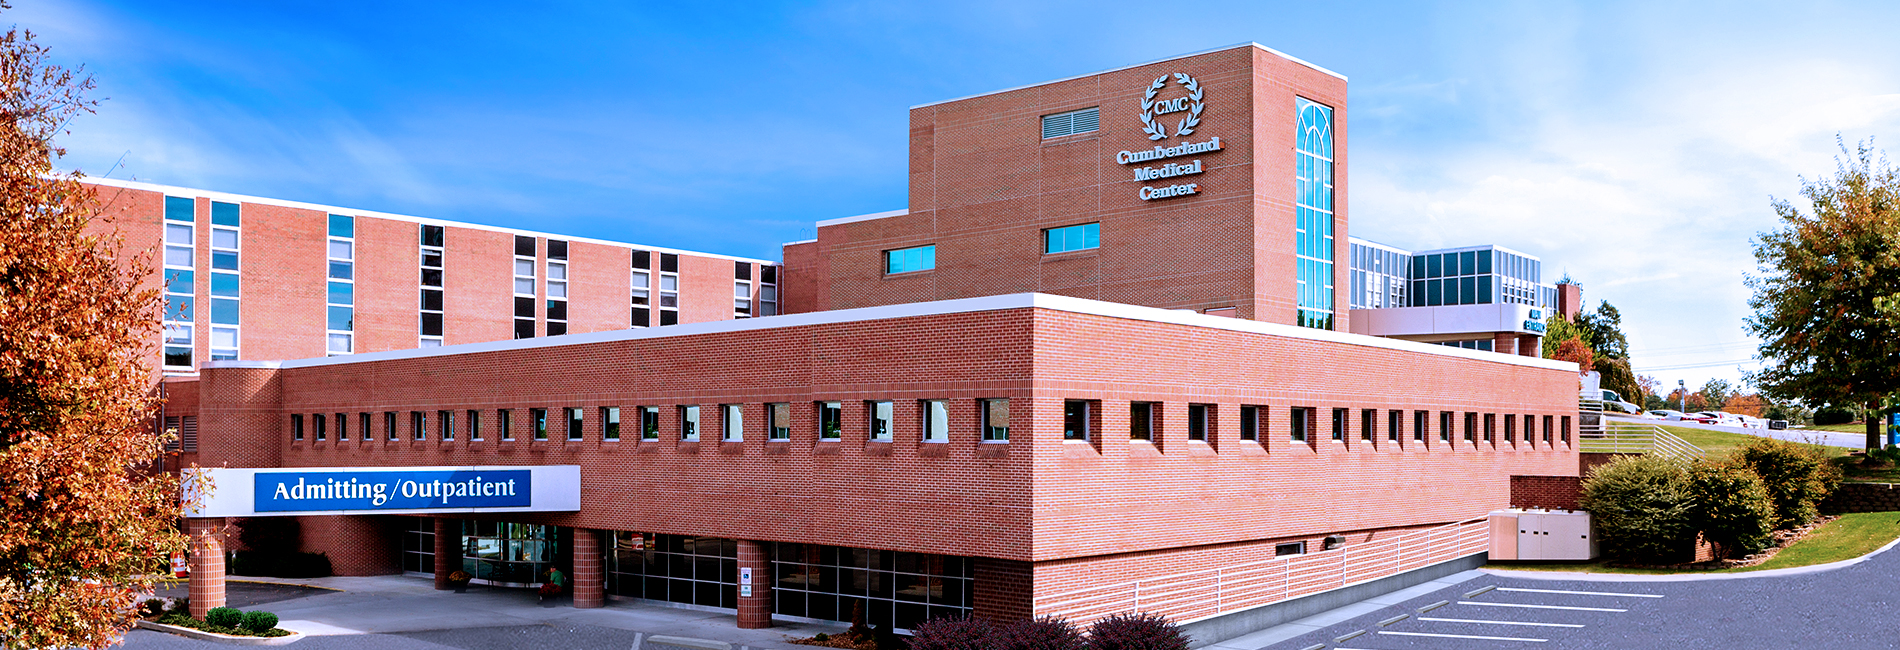 Welcome To Cumberland Medical Center Cumberland Medical